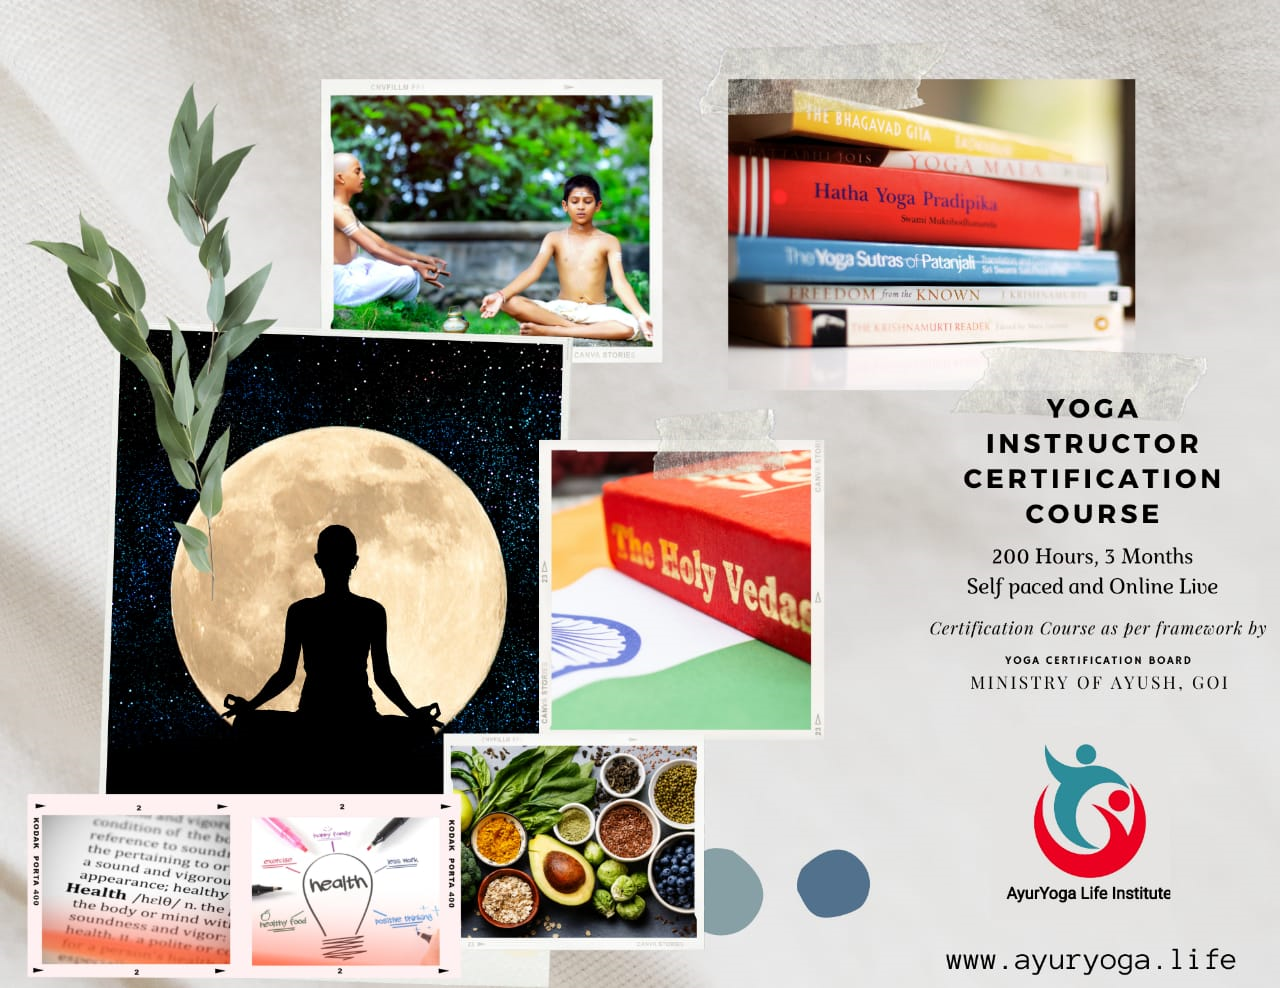 Yoga Instructor Certification Course - YICC